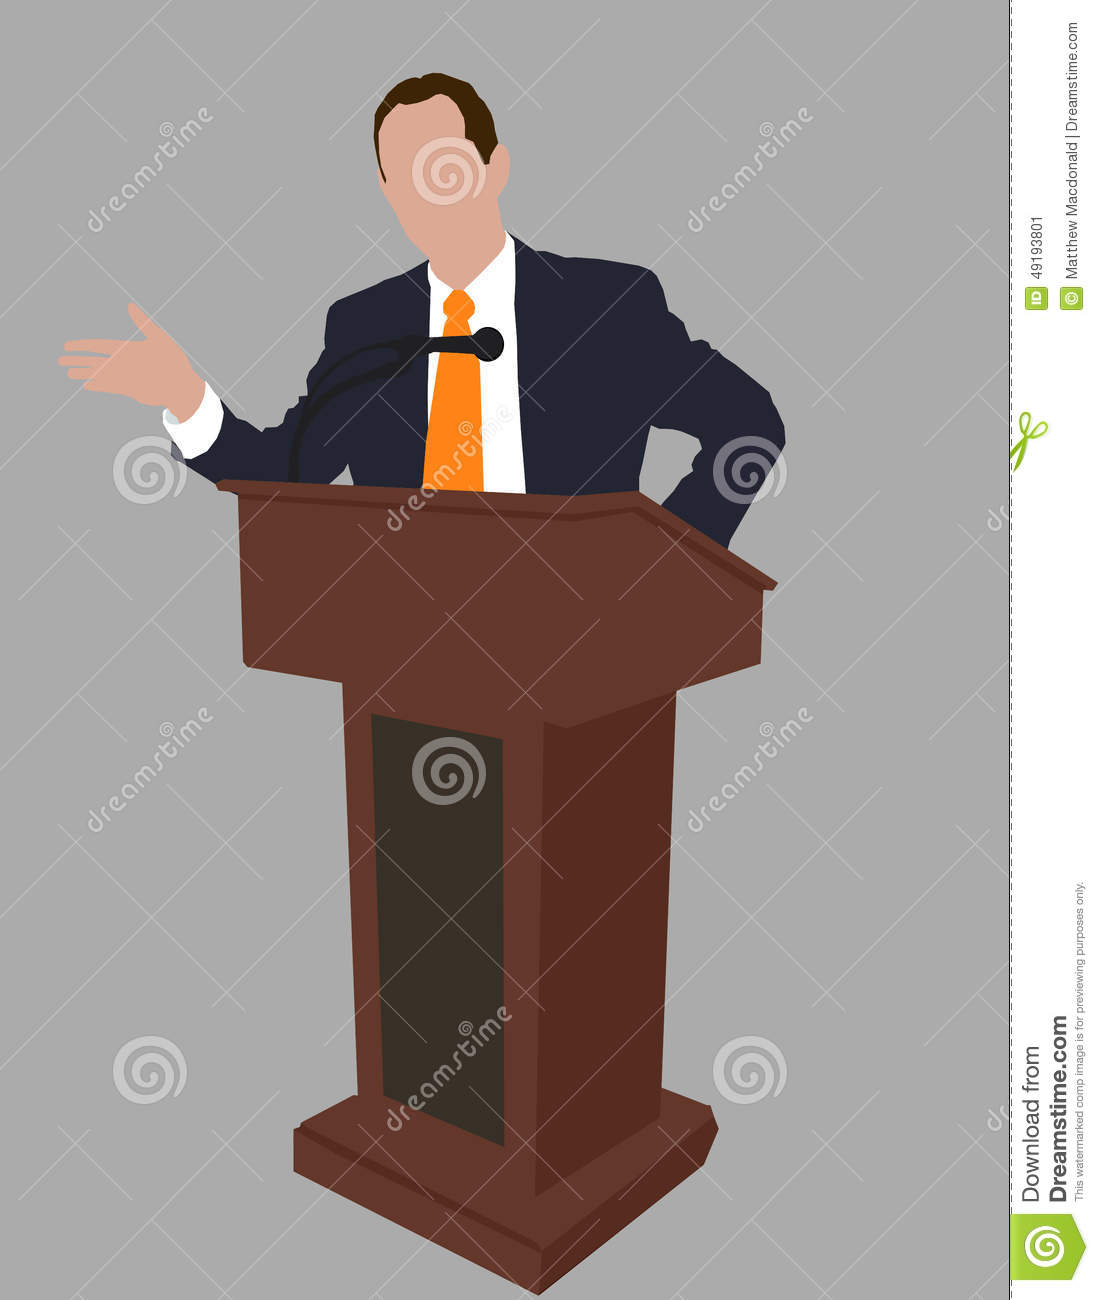 Business plan professional speaker, royalty-free stock vector id: 454460350